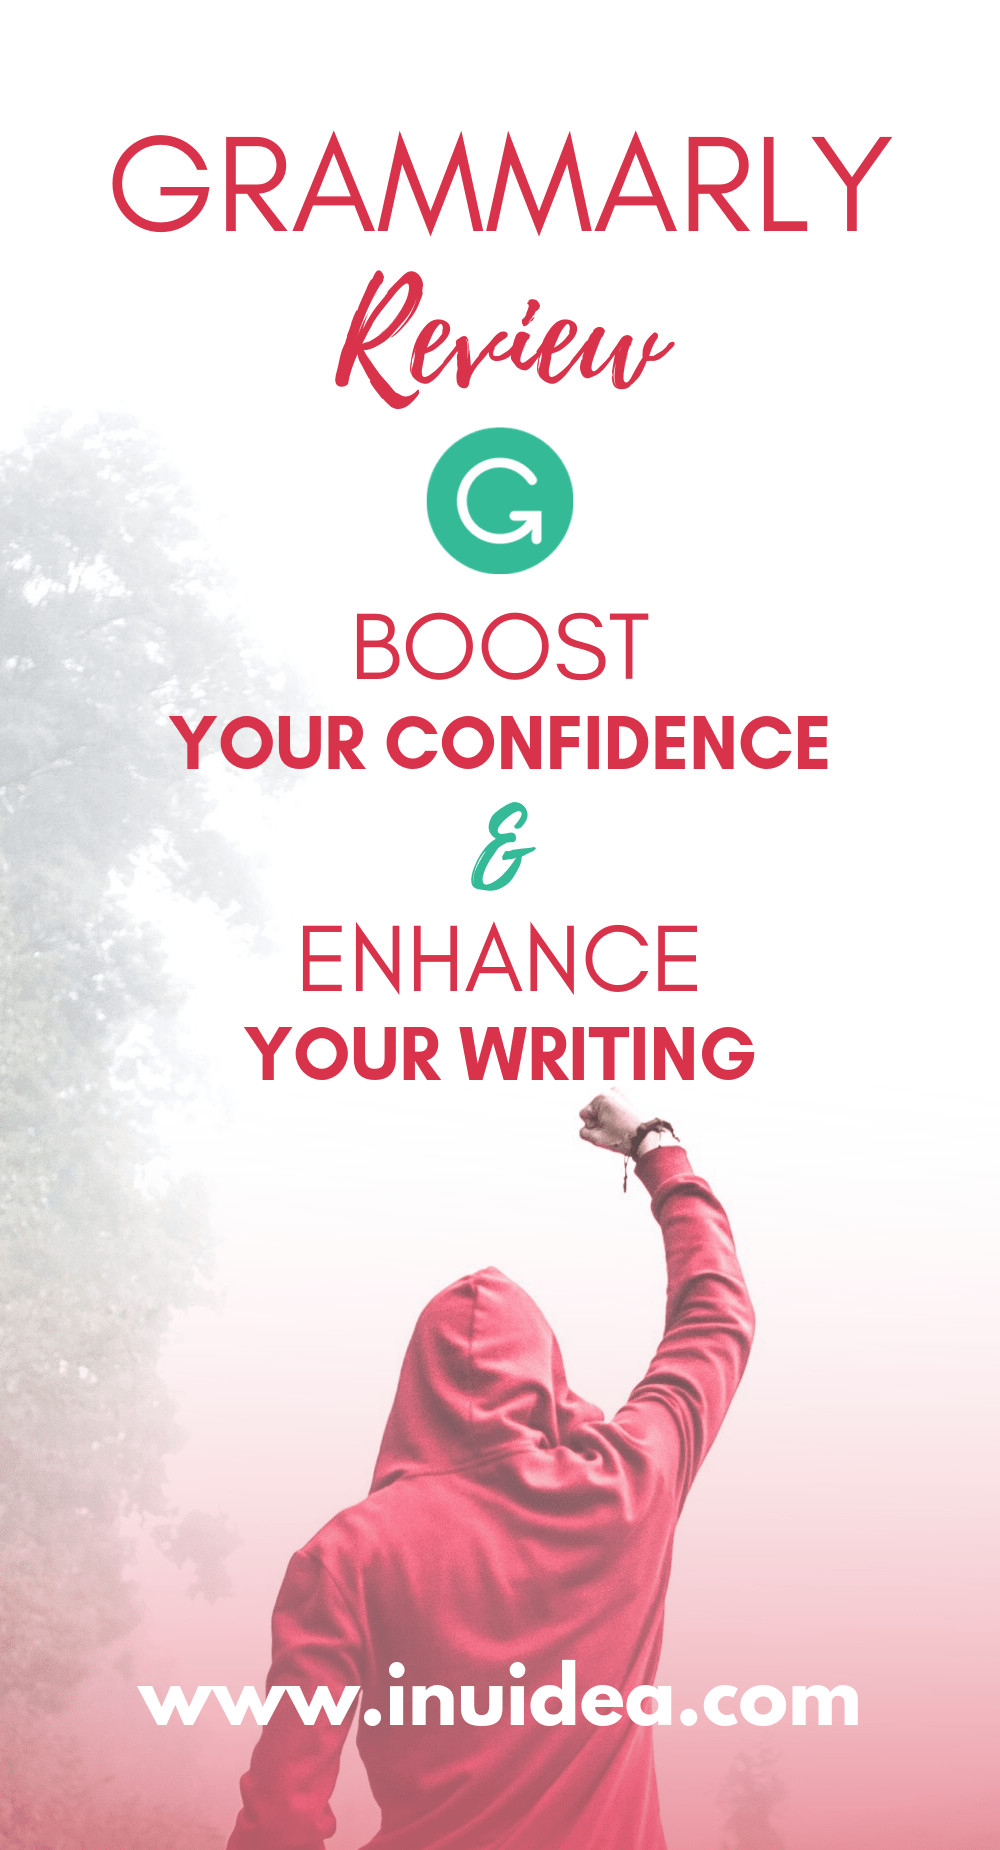 Cheap Grammarly Proofreading Software On Finance